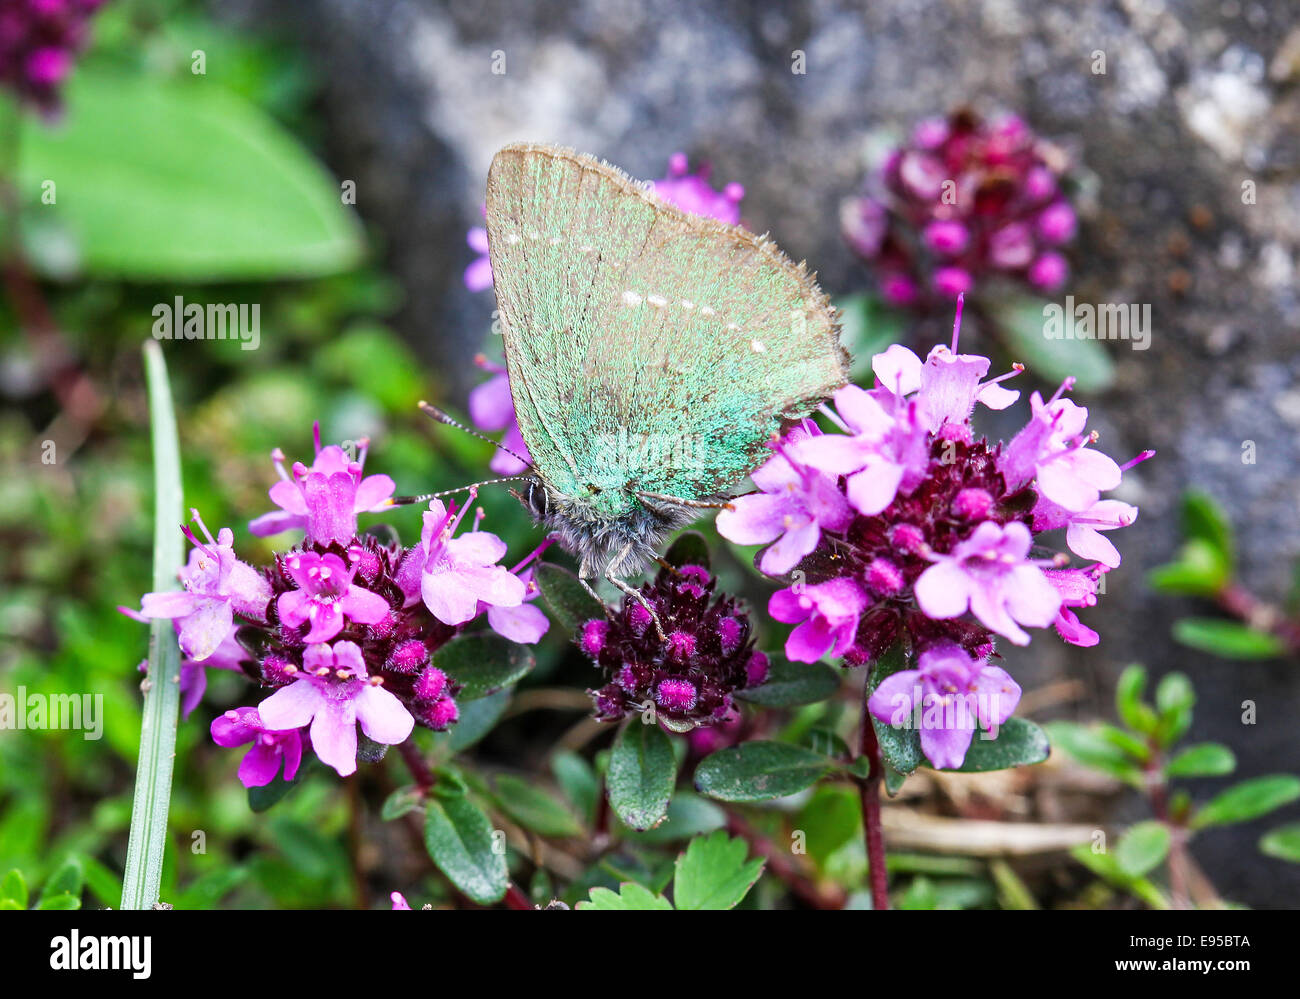 a-green-hairstreak-butterfly-callophrys-rubi-on-pink-flowers-E95BTA.jpg